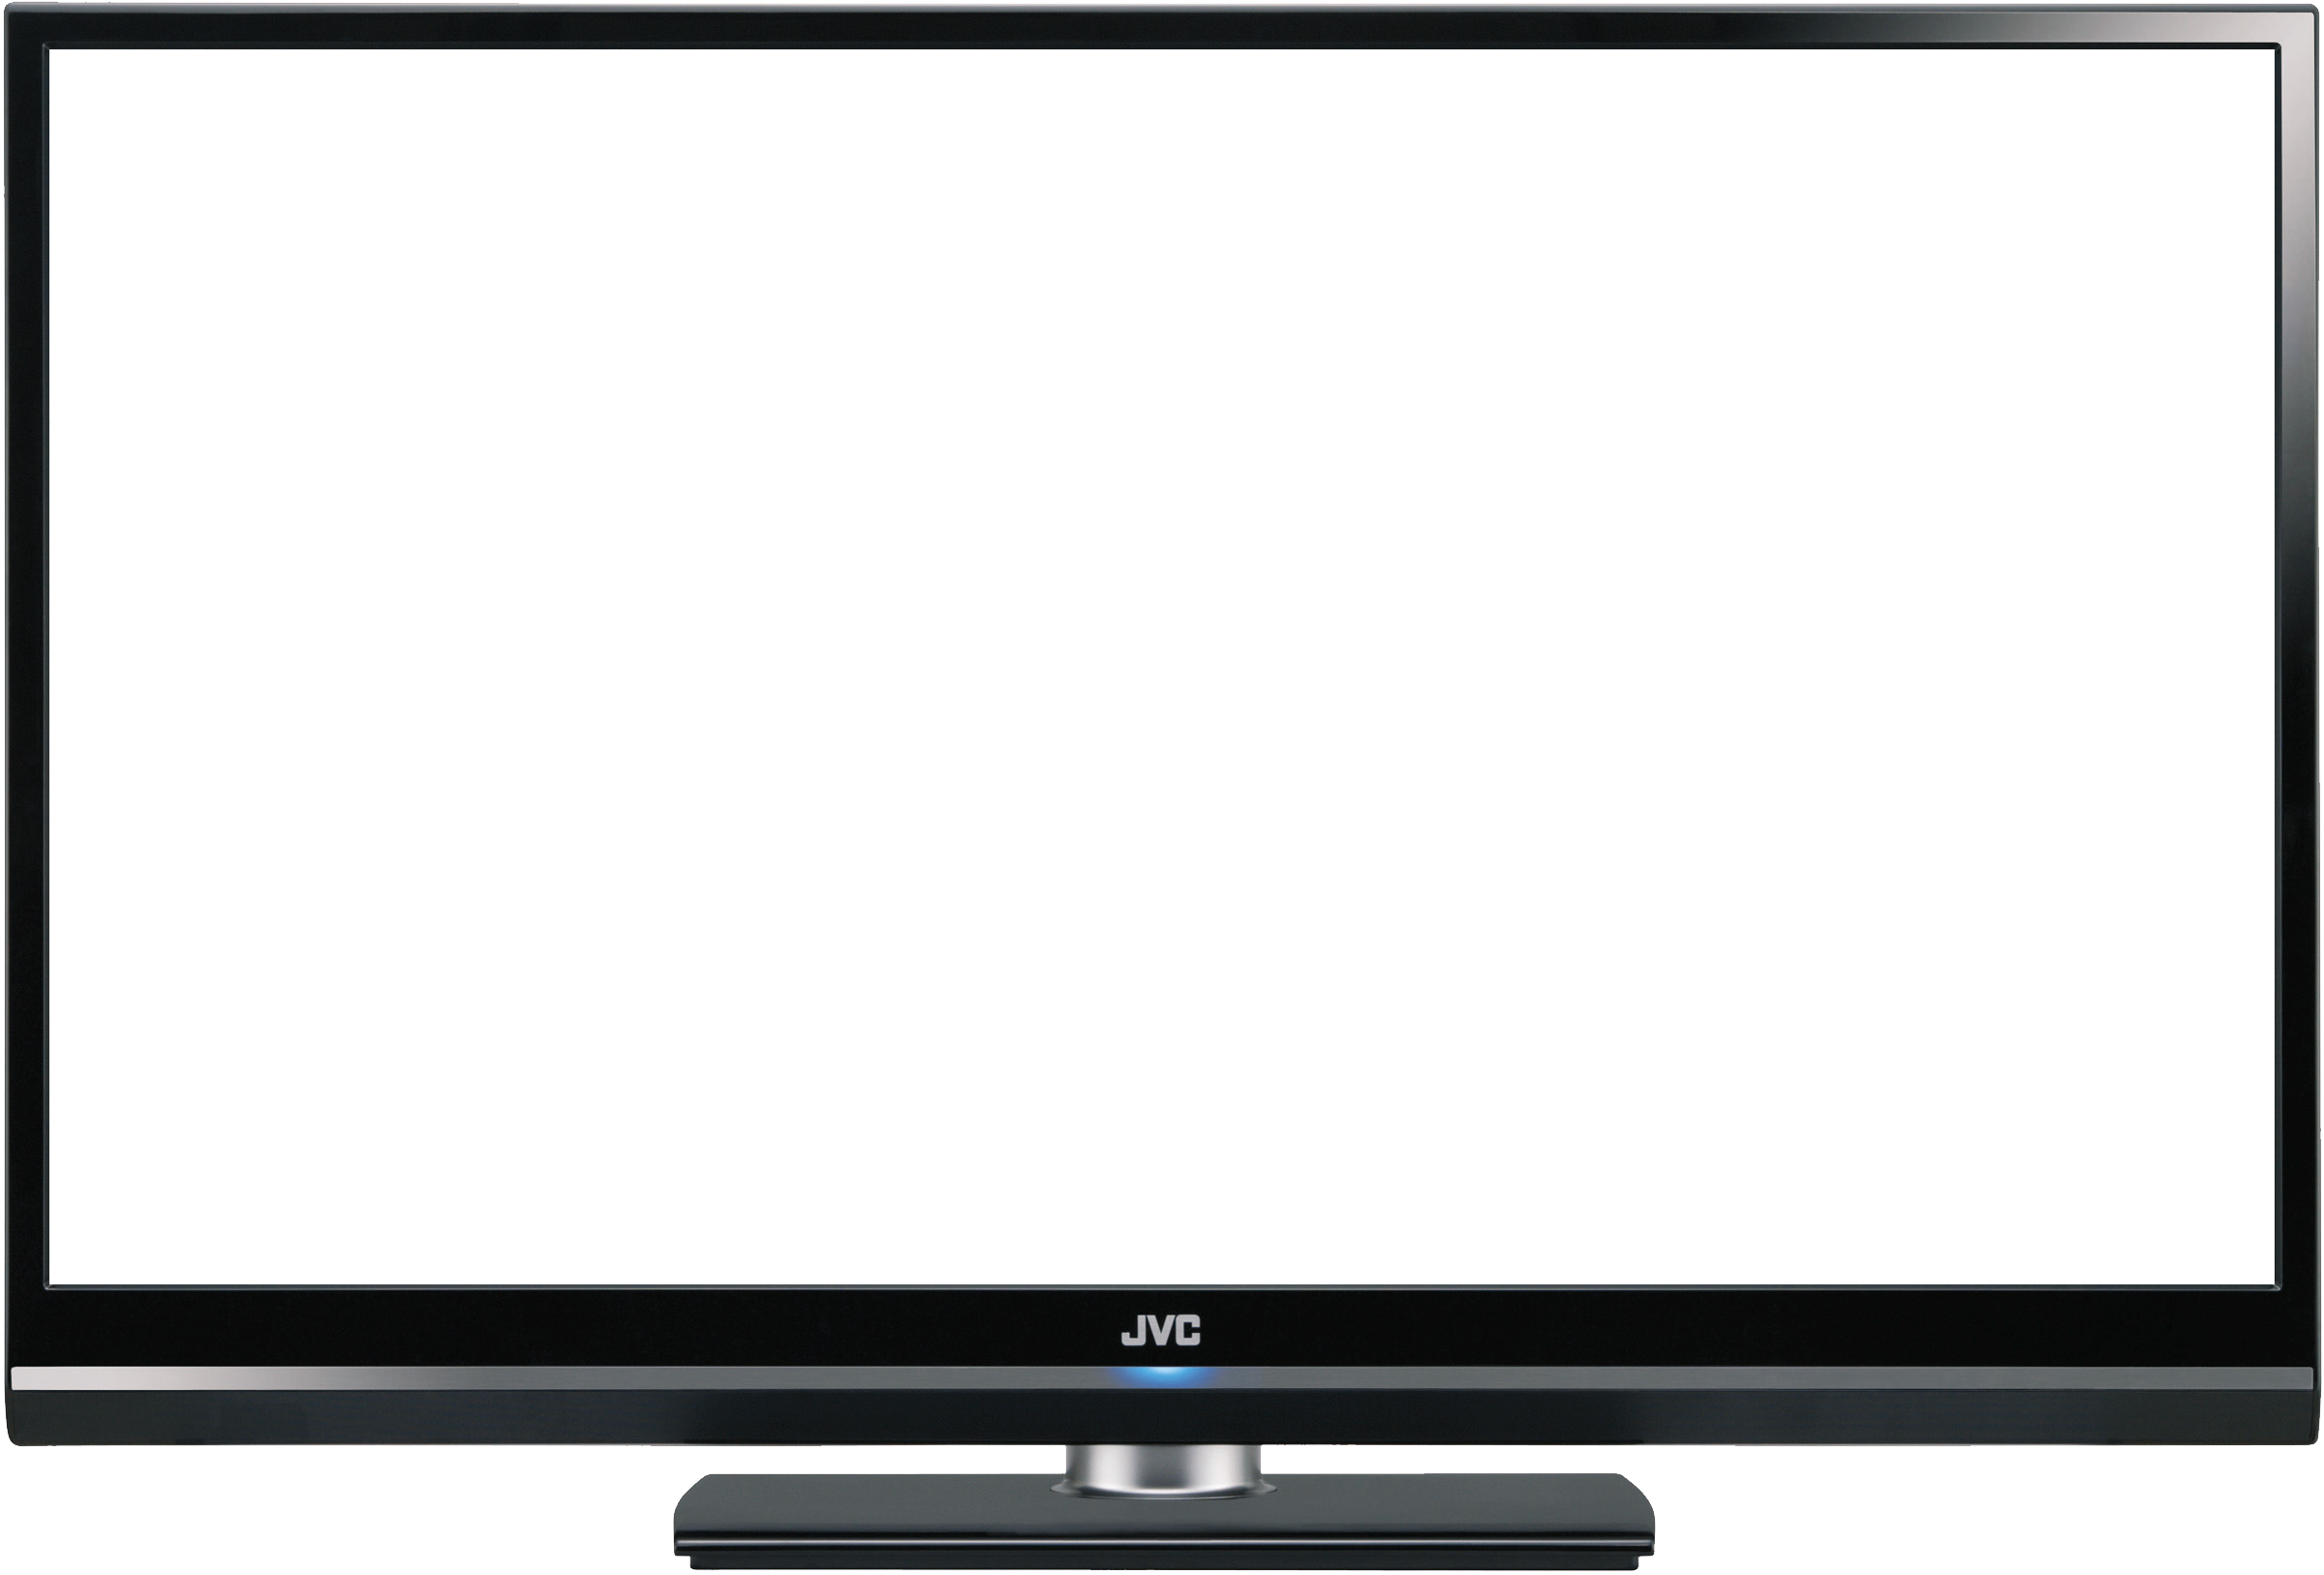 Television Png image #22275